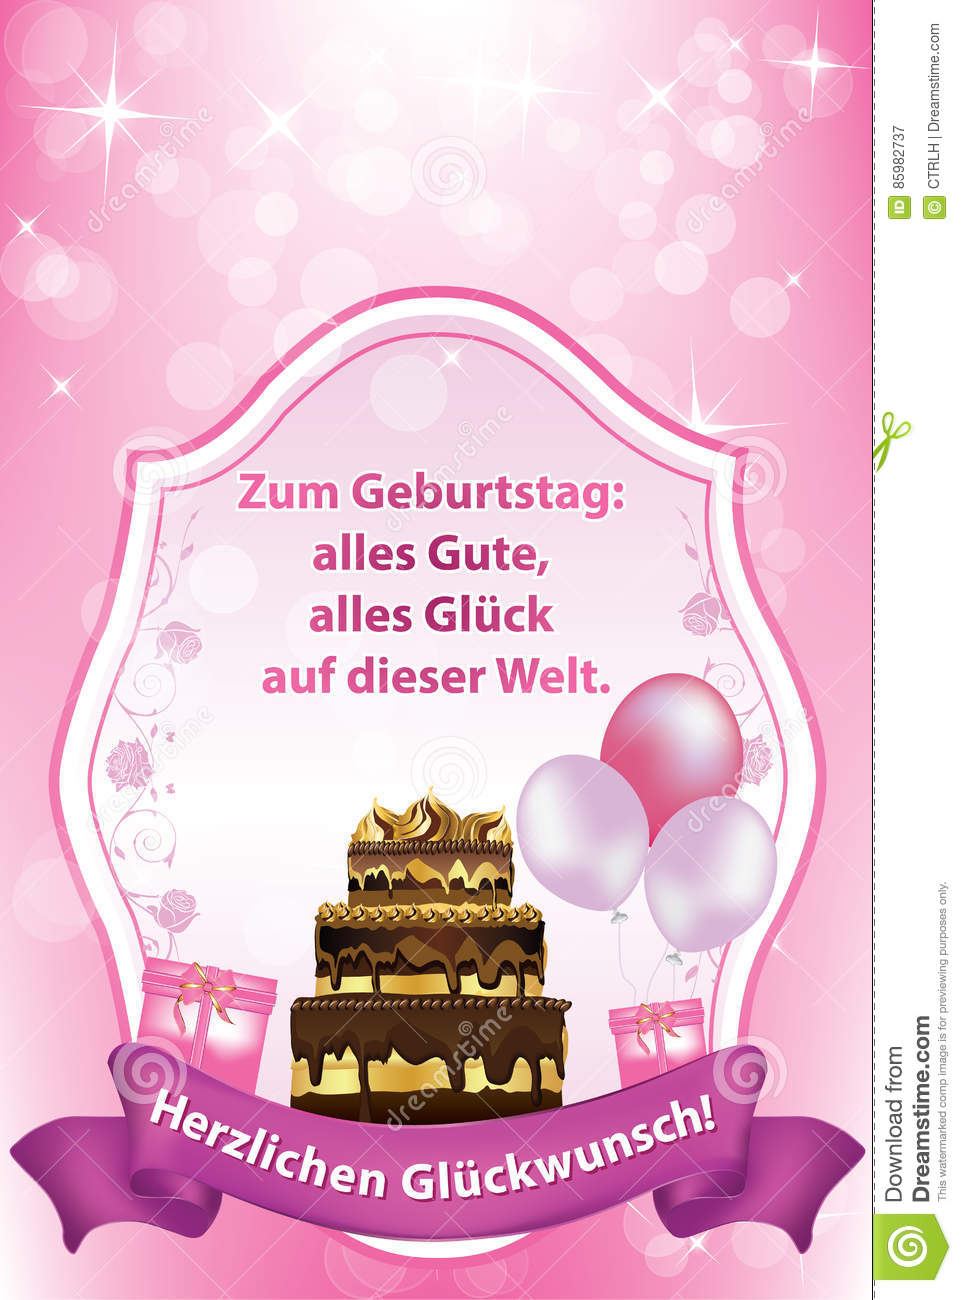 German Birthday Greeting Card Also Print Cake Balloons Especially Girls Women Happy All Happiness World 85982737